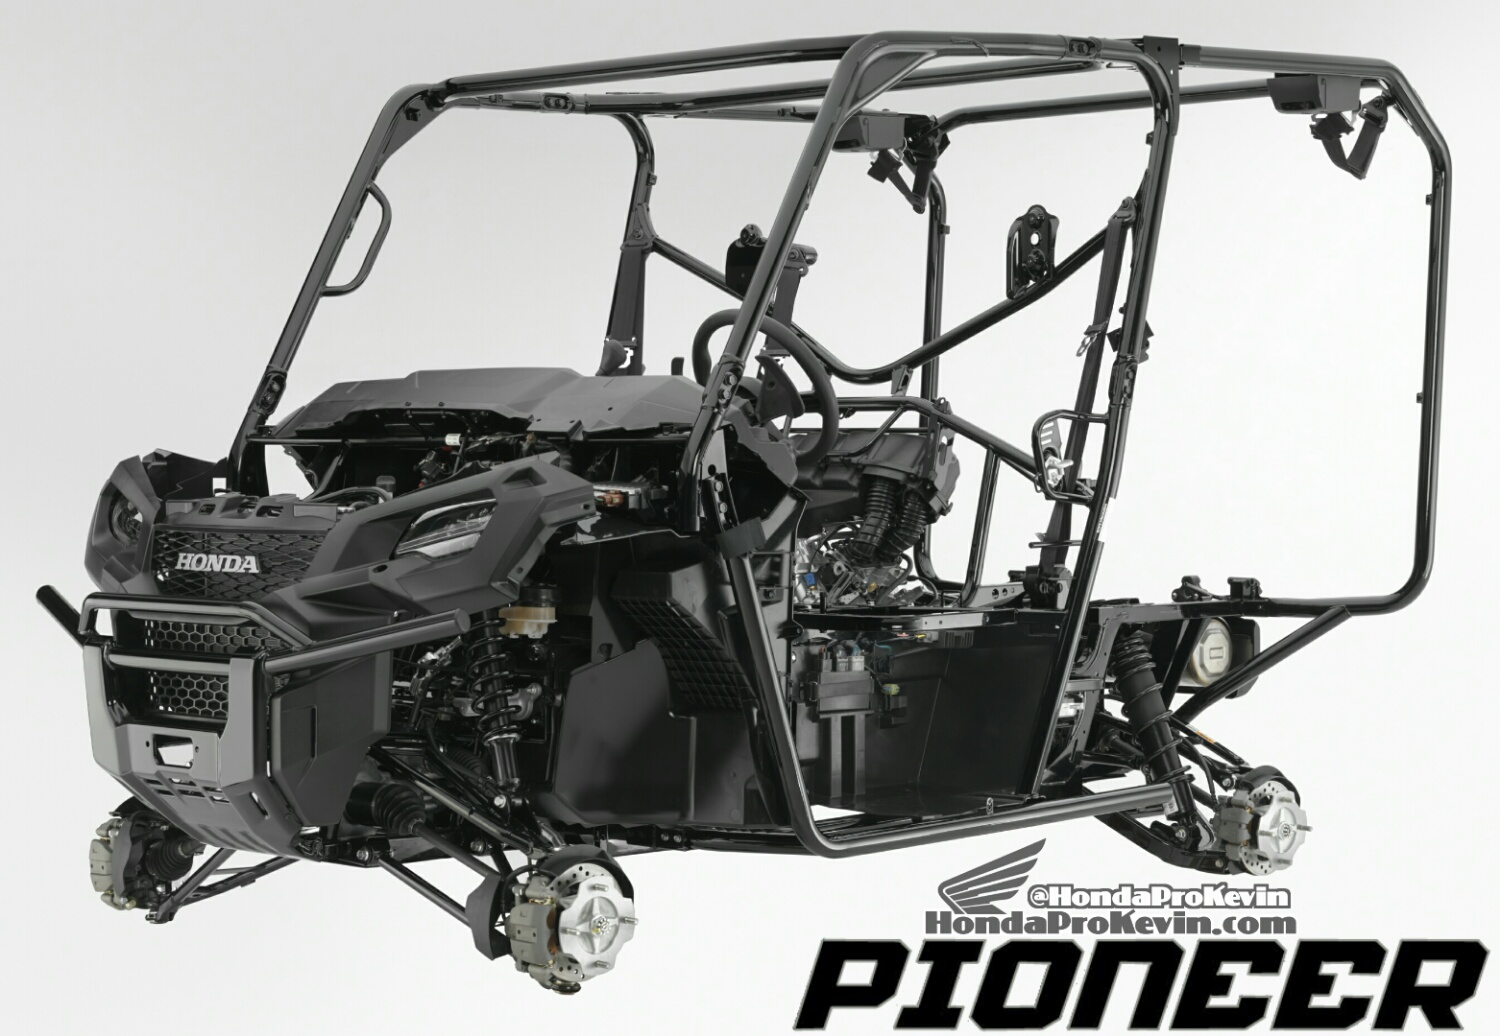 2018 Honda Pioneer 1000-5 Frame / Chassis - Review - Side by Side / UTV / SxS / Utility Vehicle